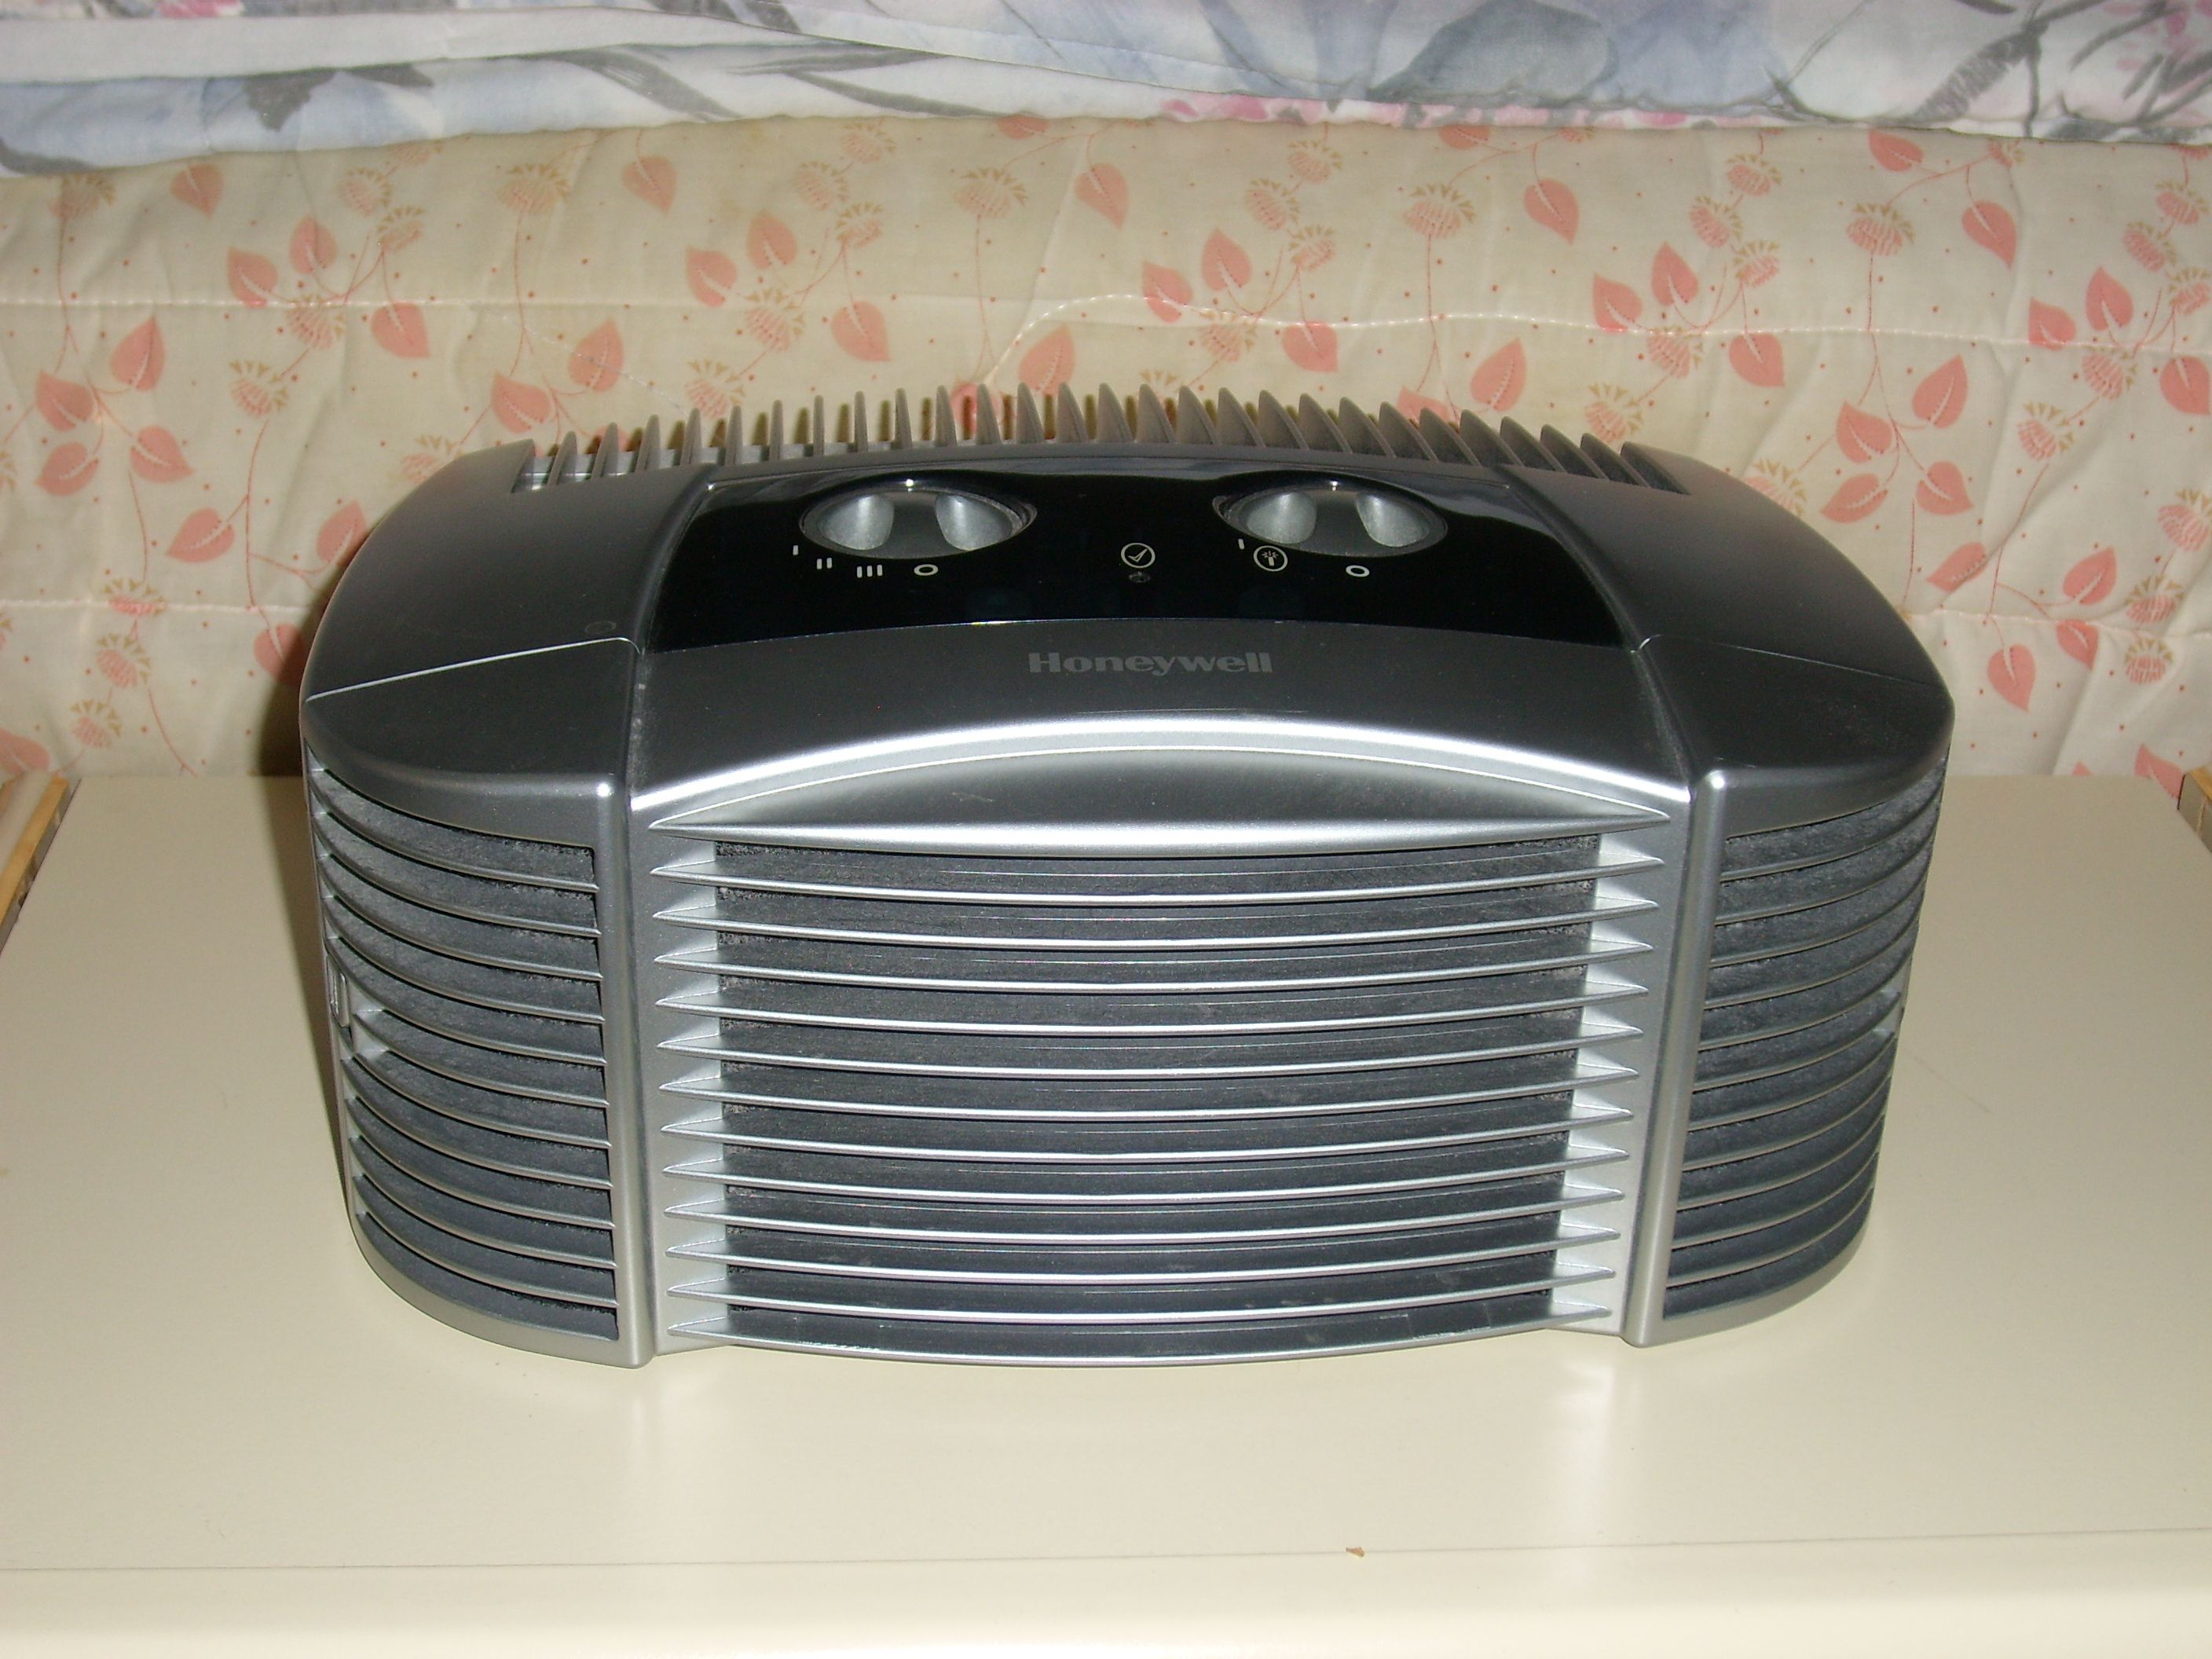 AIR CLEANERS Learn about ways to get rid of mold spores